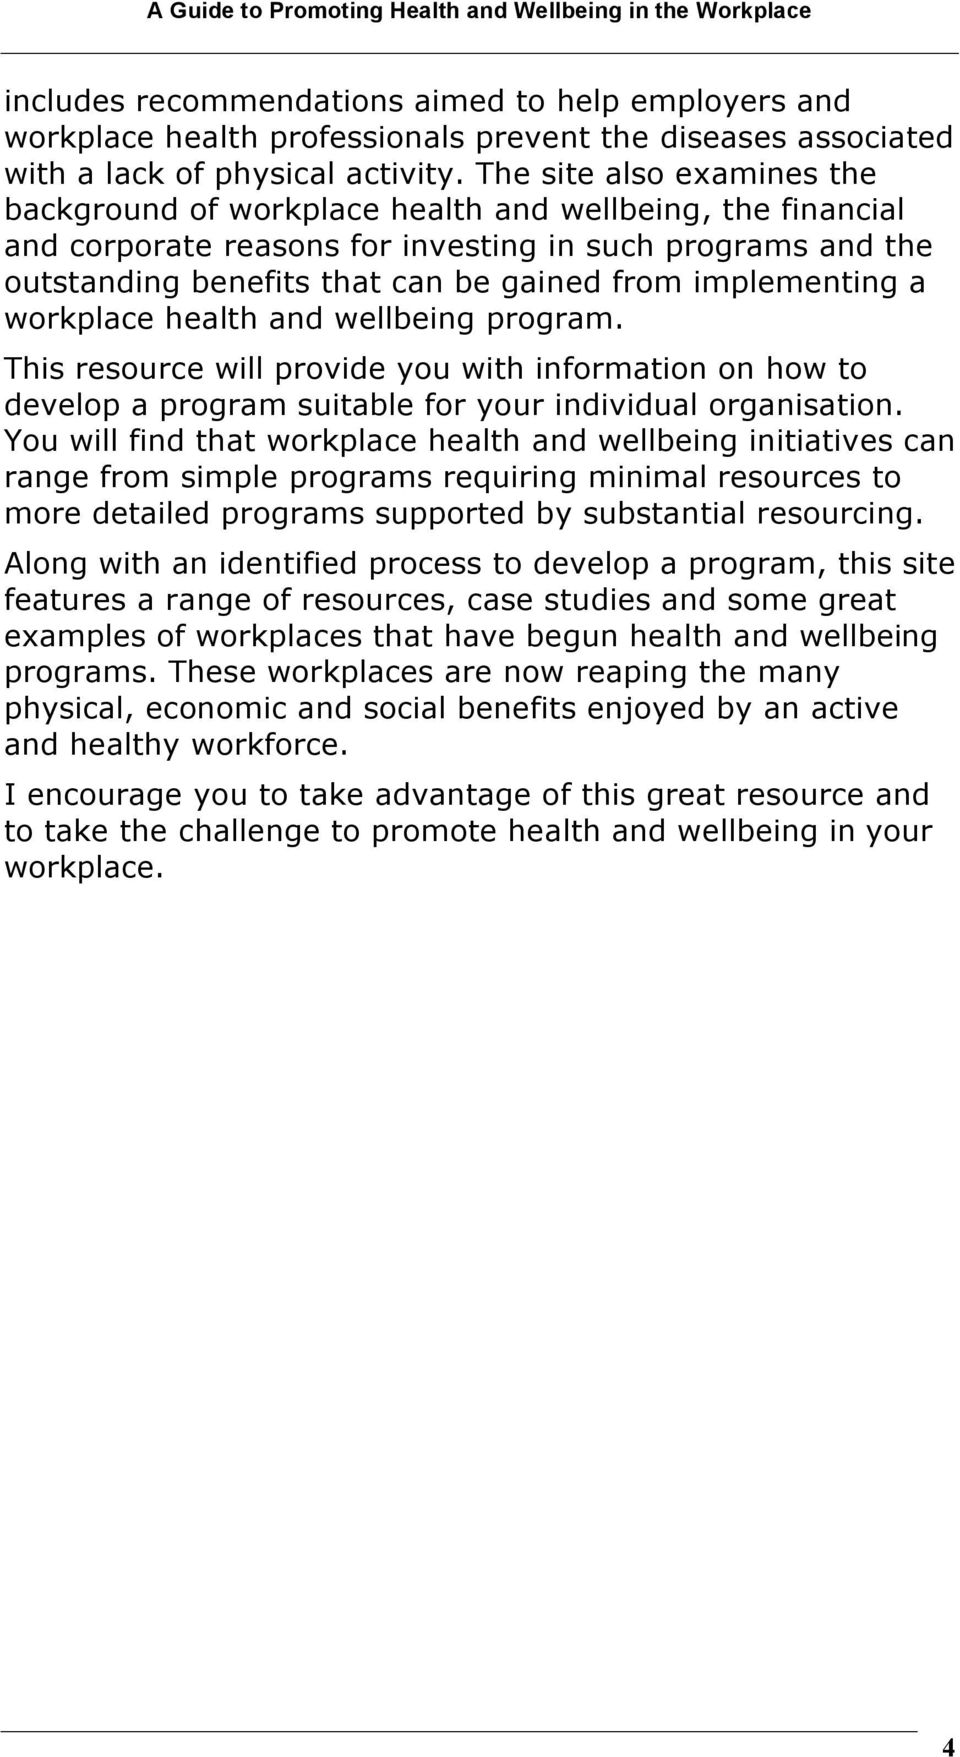 implementing a workplace health and wellbeing program. This resource will provide you with information on how to develop a program suitable for your individual organisation.